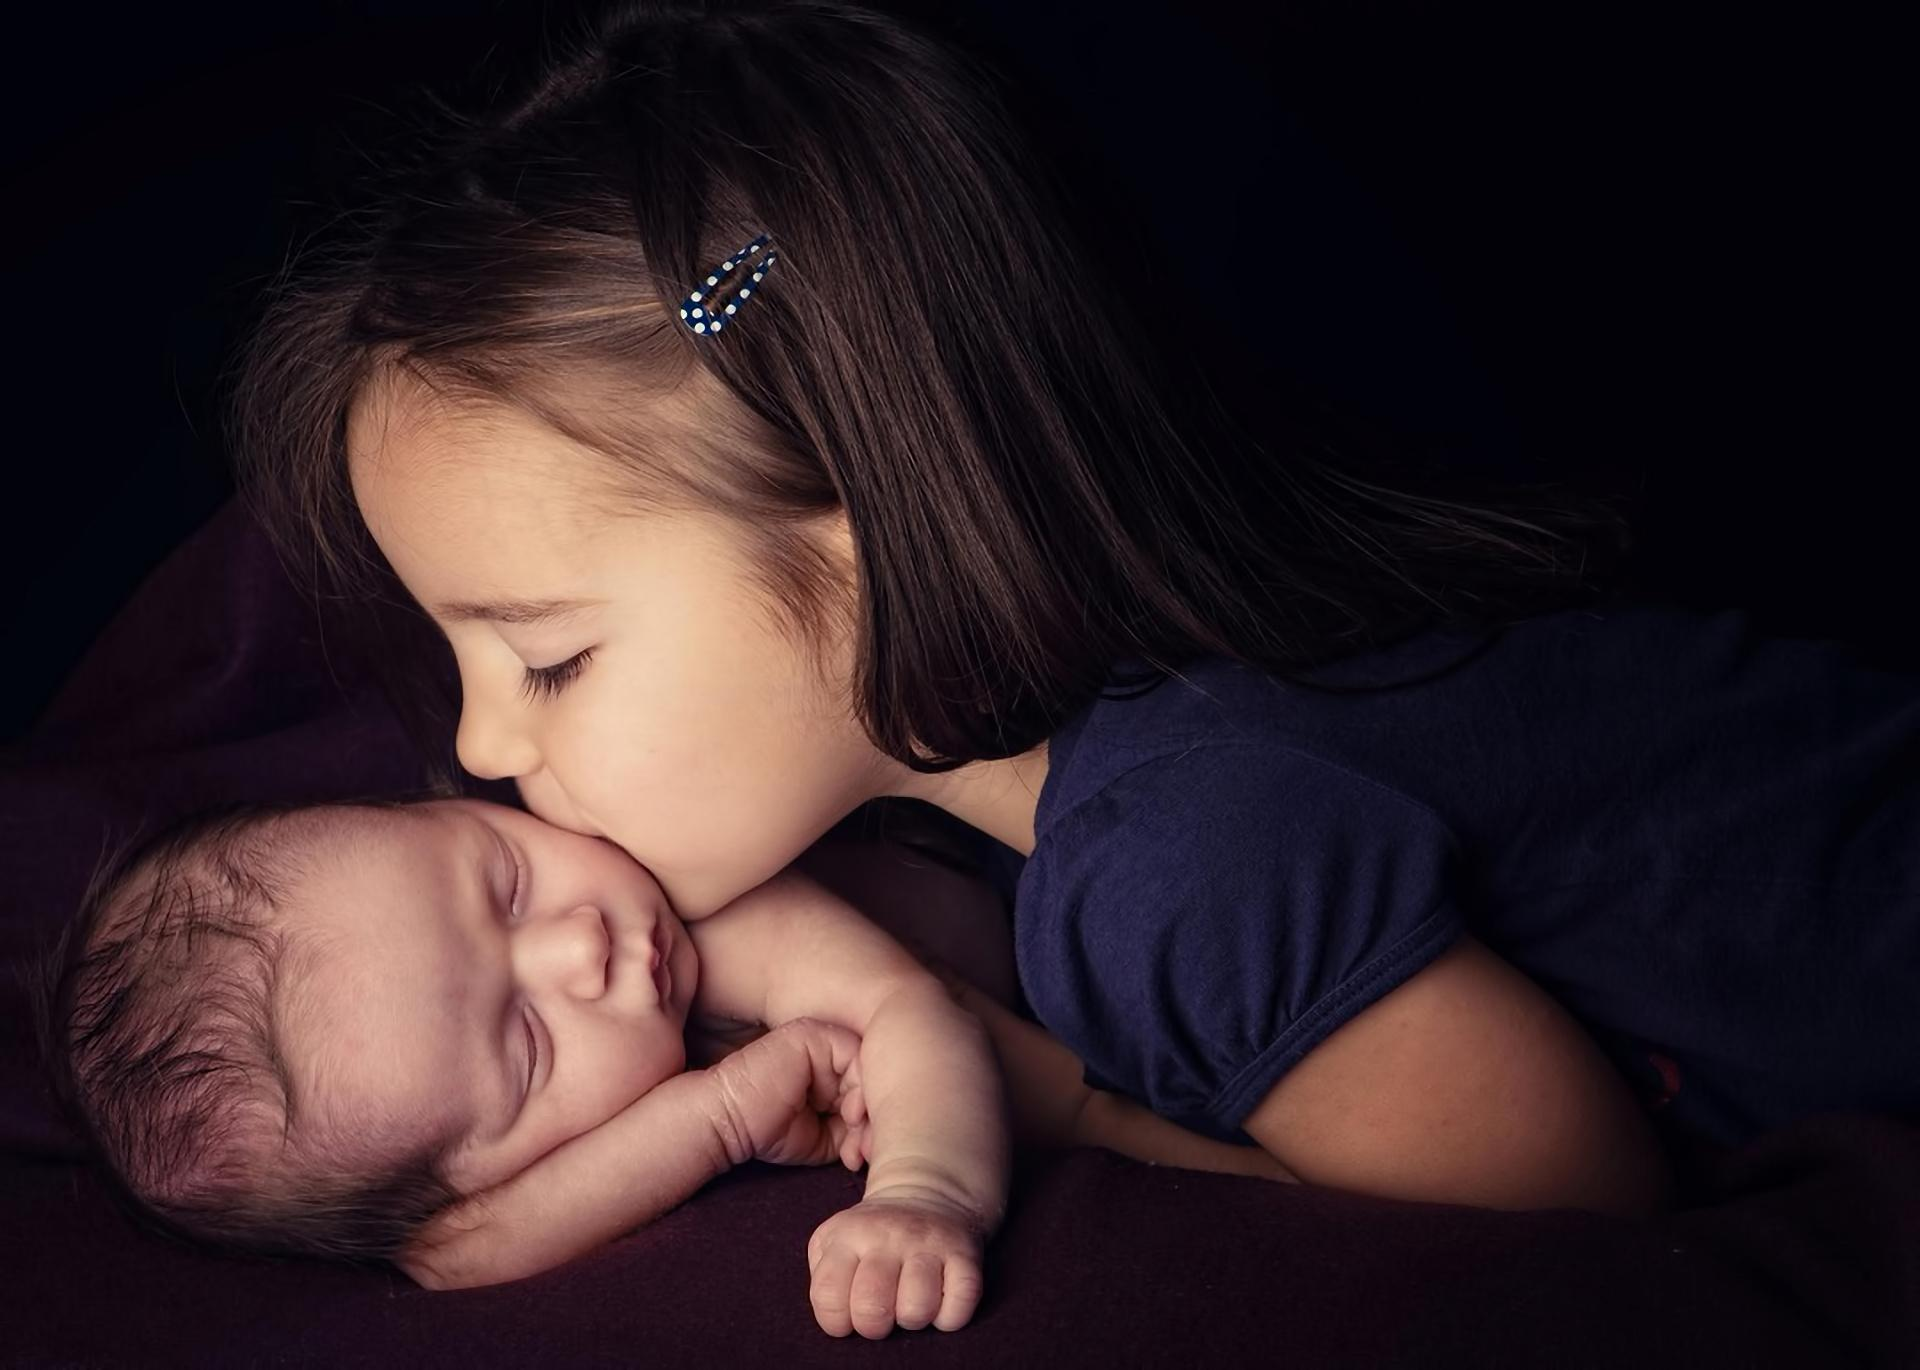 New Born Baby Wallpapers Girl Child Kiss New Born Baby Wallpapers Hd Desktop And Mobile